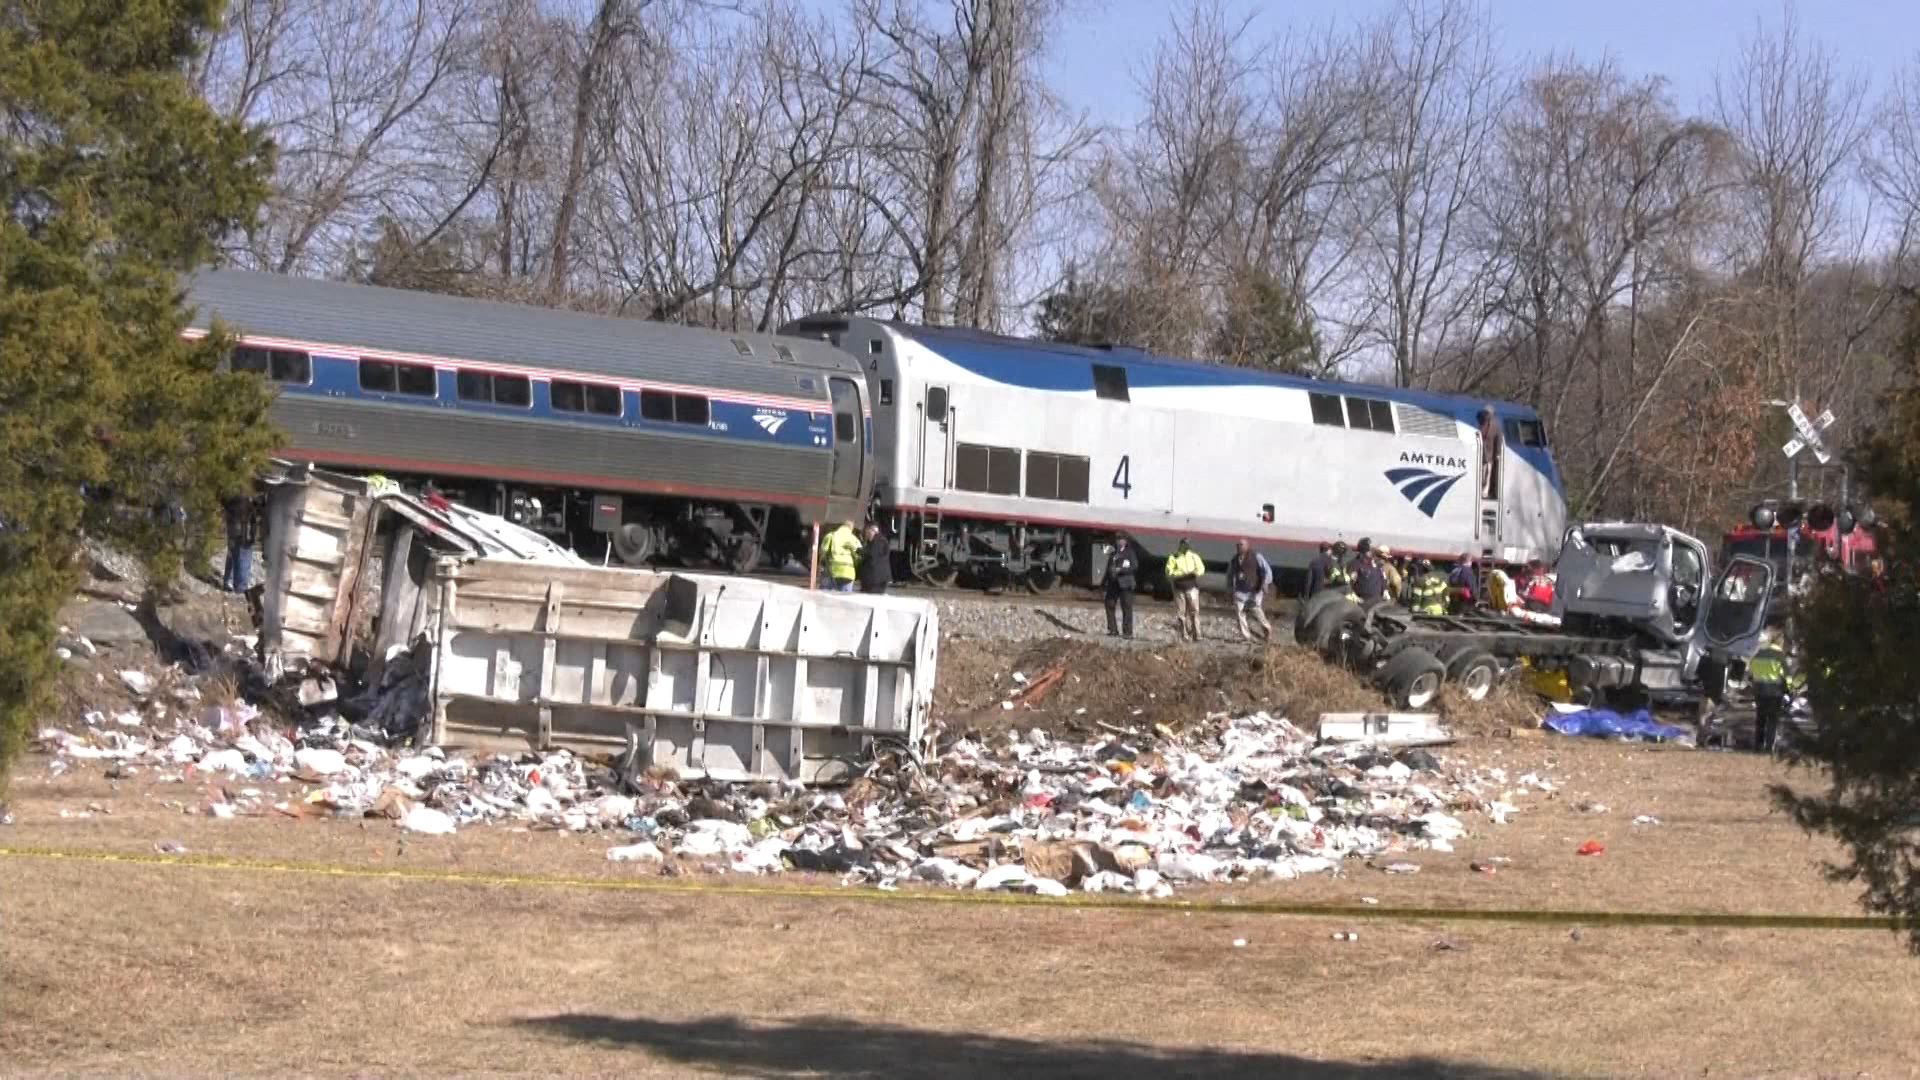 Train Carrying Republican Lawmakers Collides With Garbage Truck